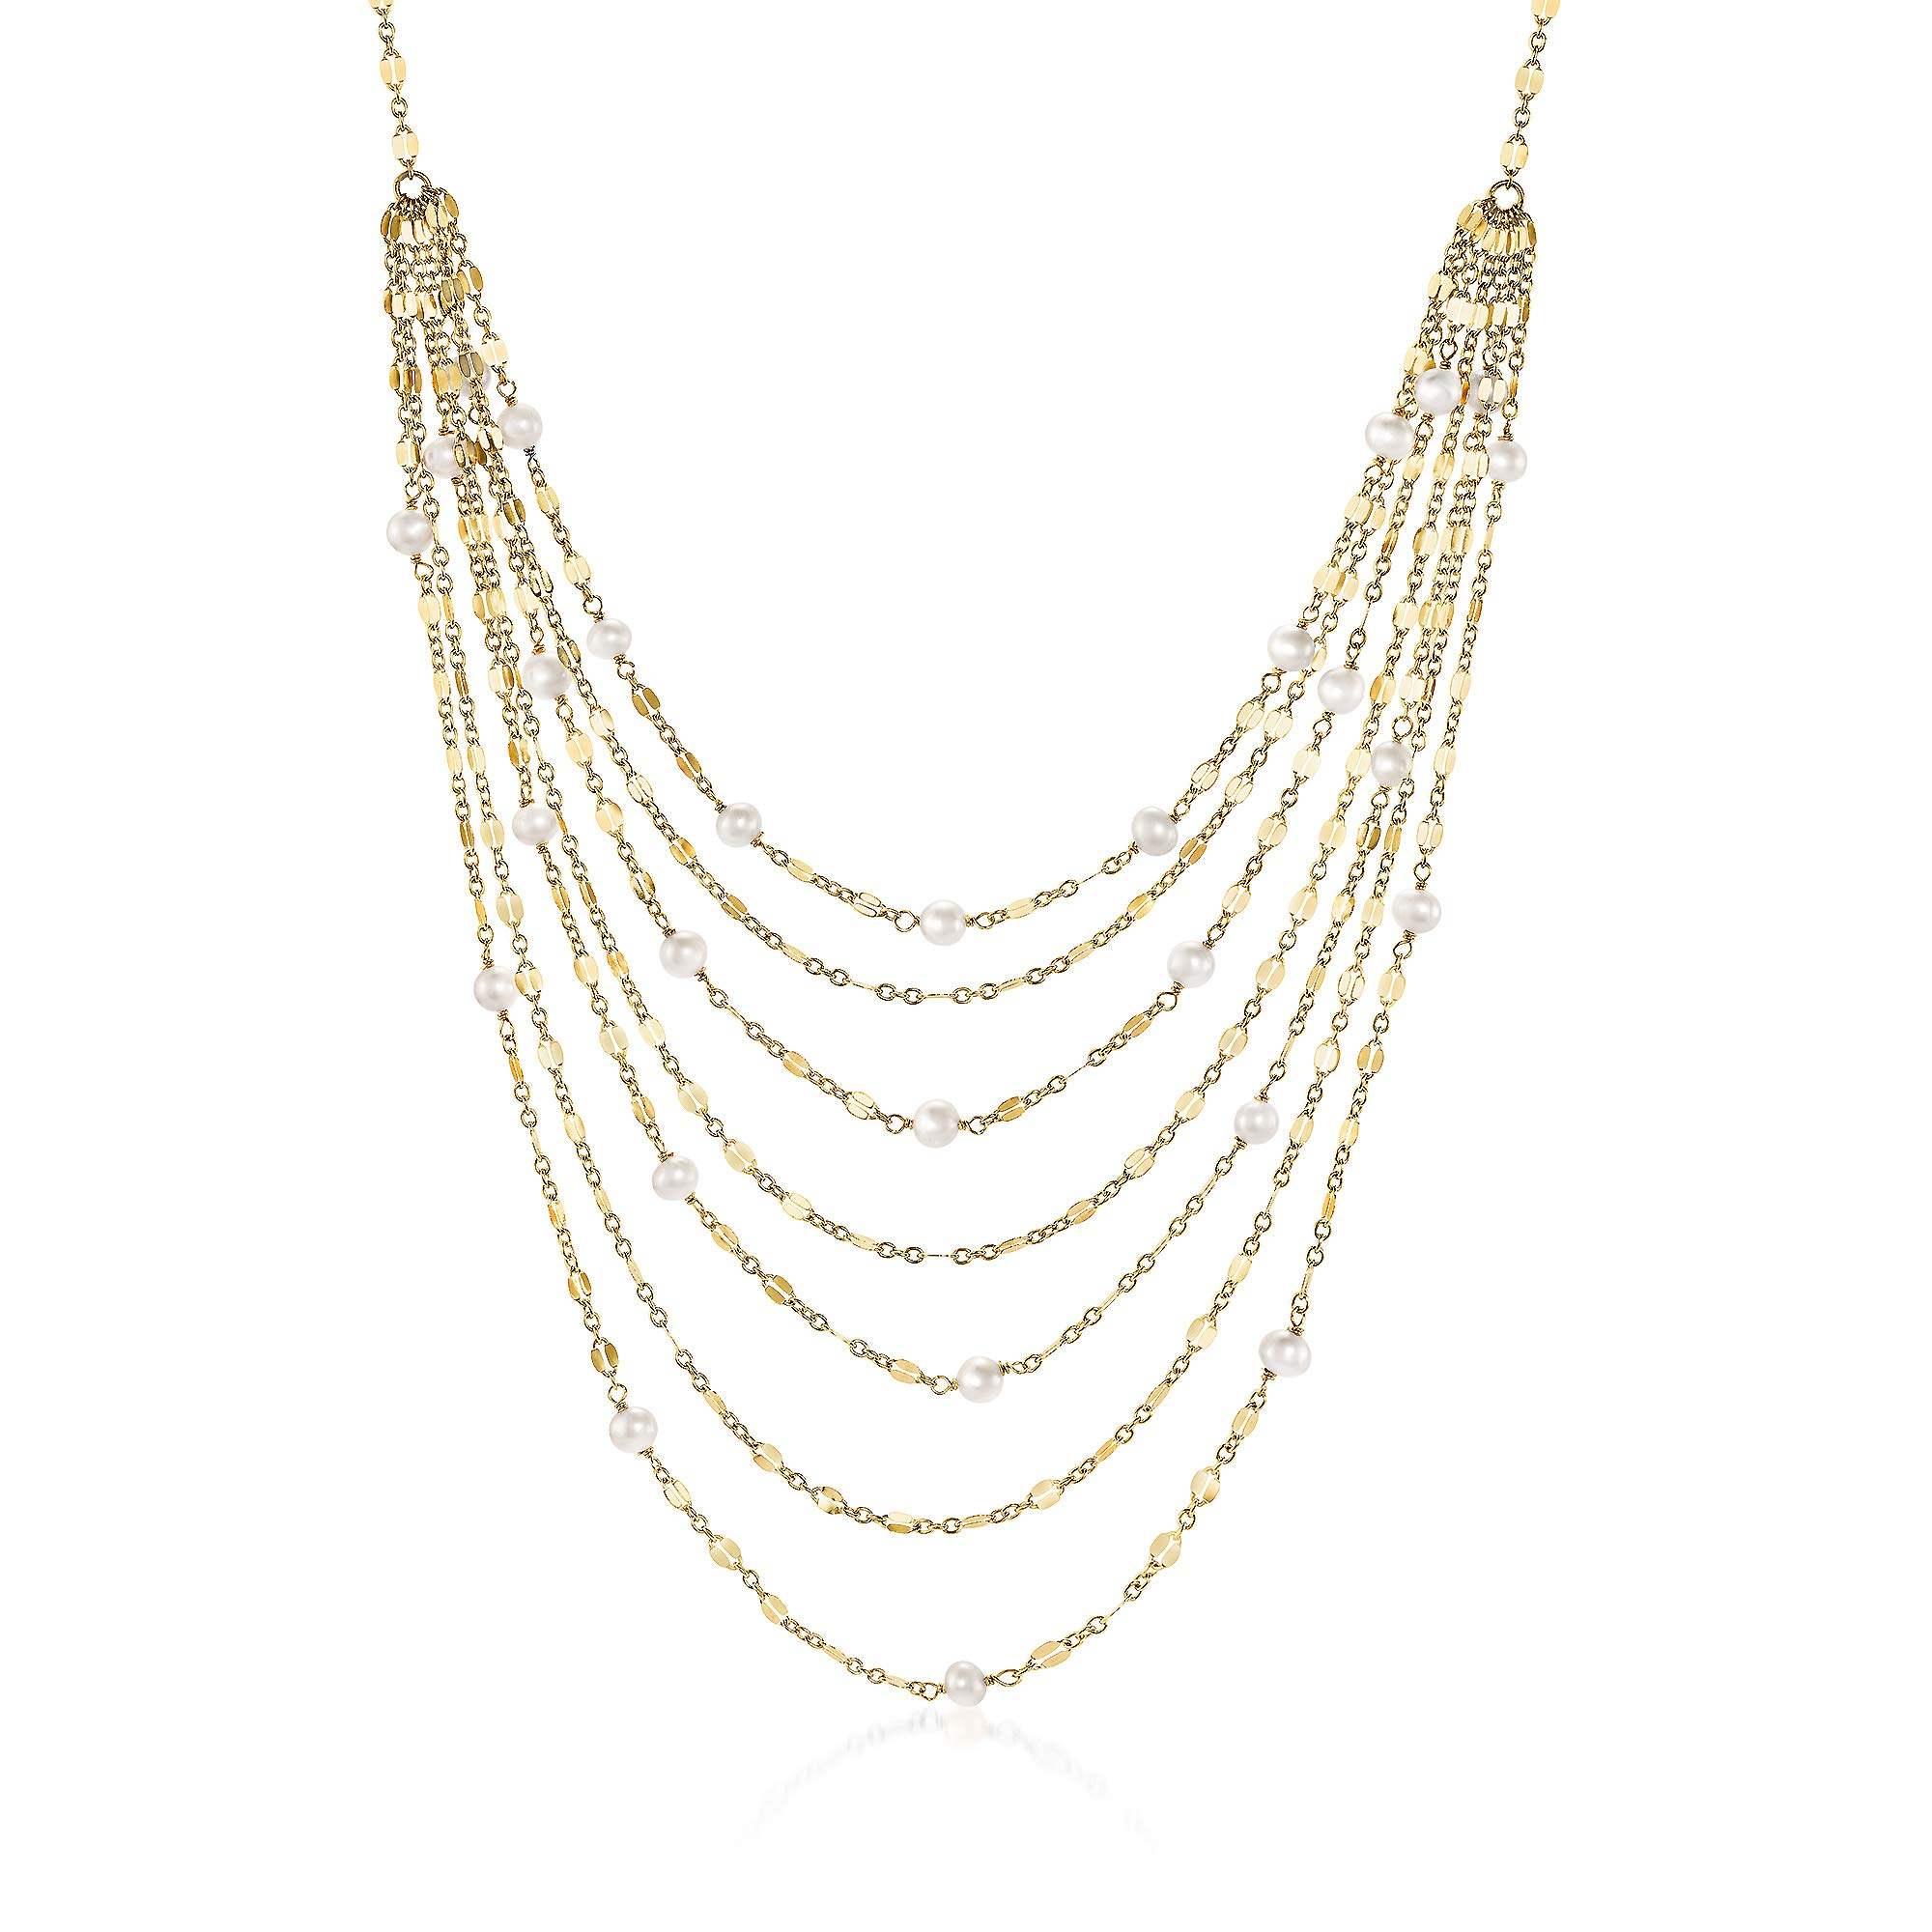 Ross-Simons 18kt Yellow Gold Over Sterling Waterfall Necklace With Cultured Pearls by Ross-Simons (Image #1)